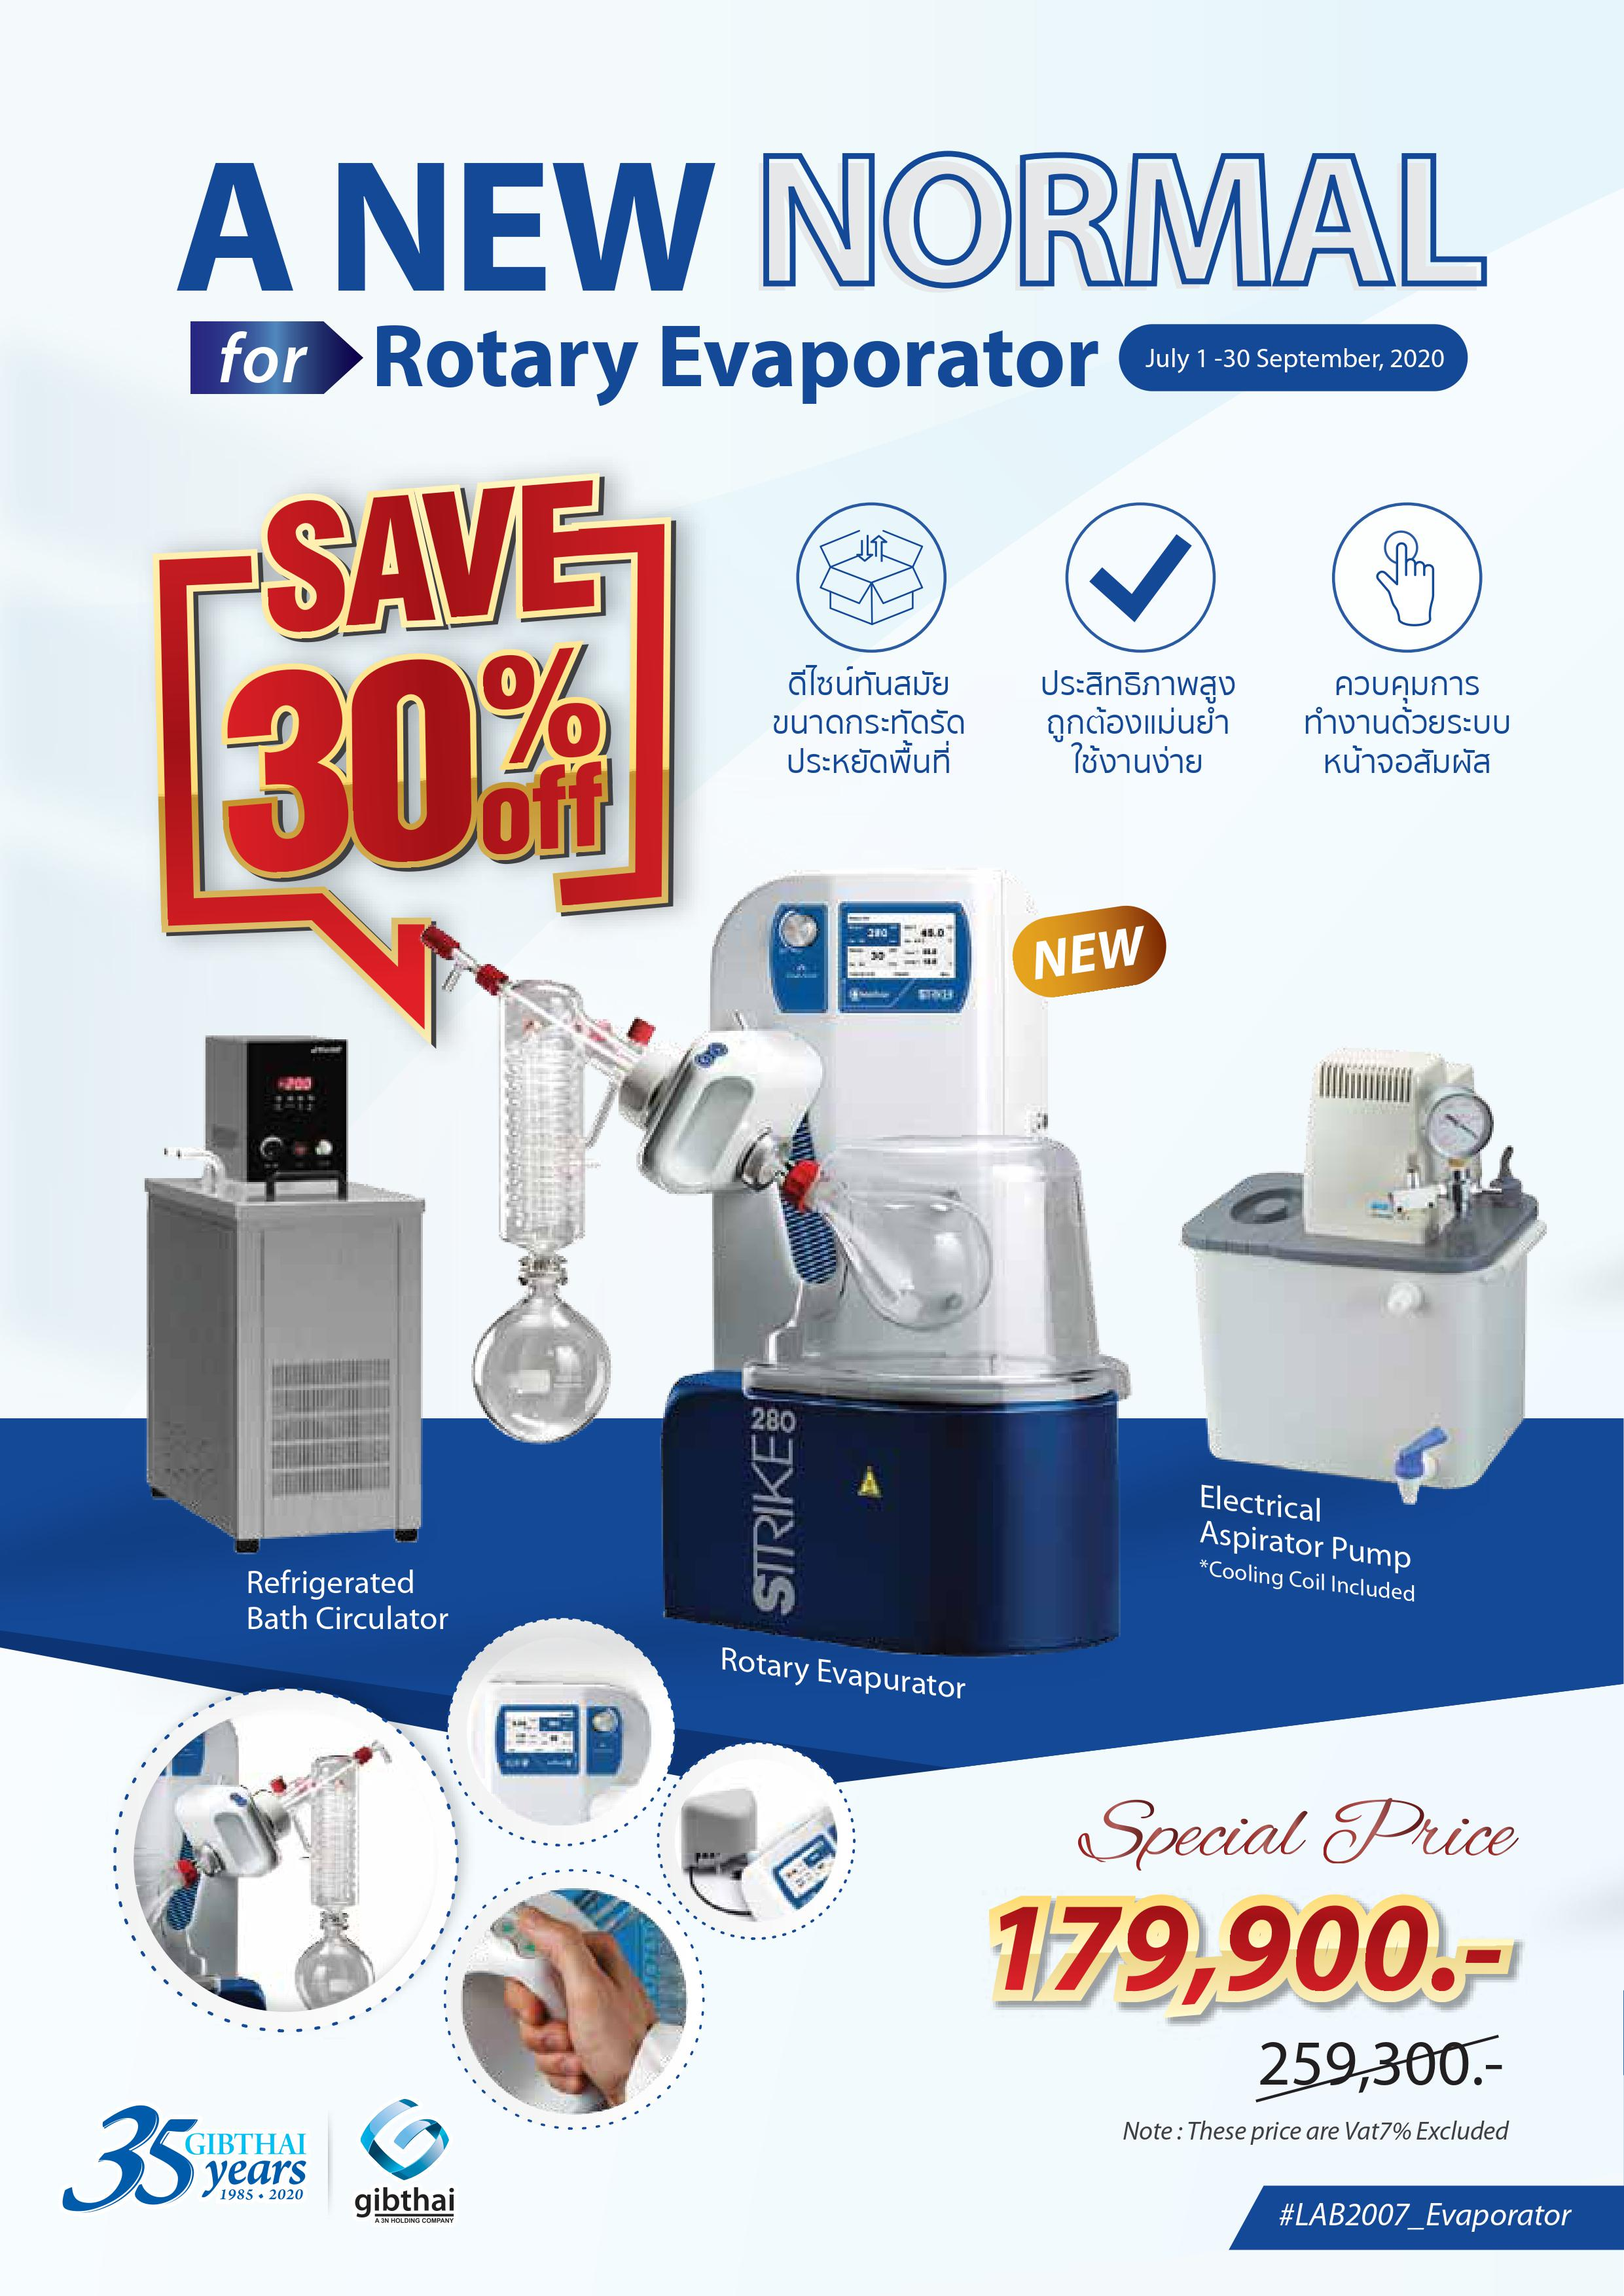 A NEW NORMAL for Rotary Evaporator